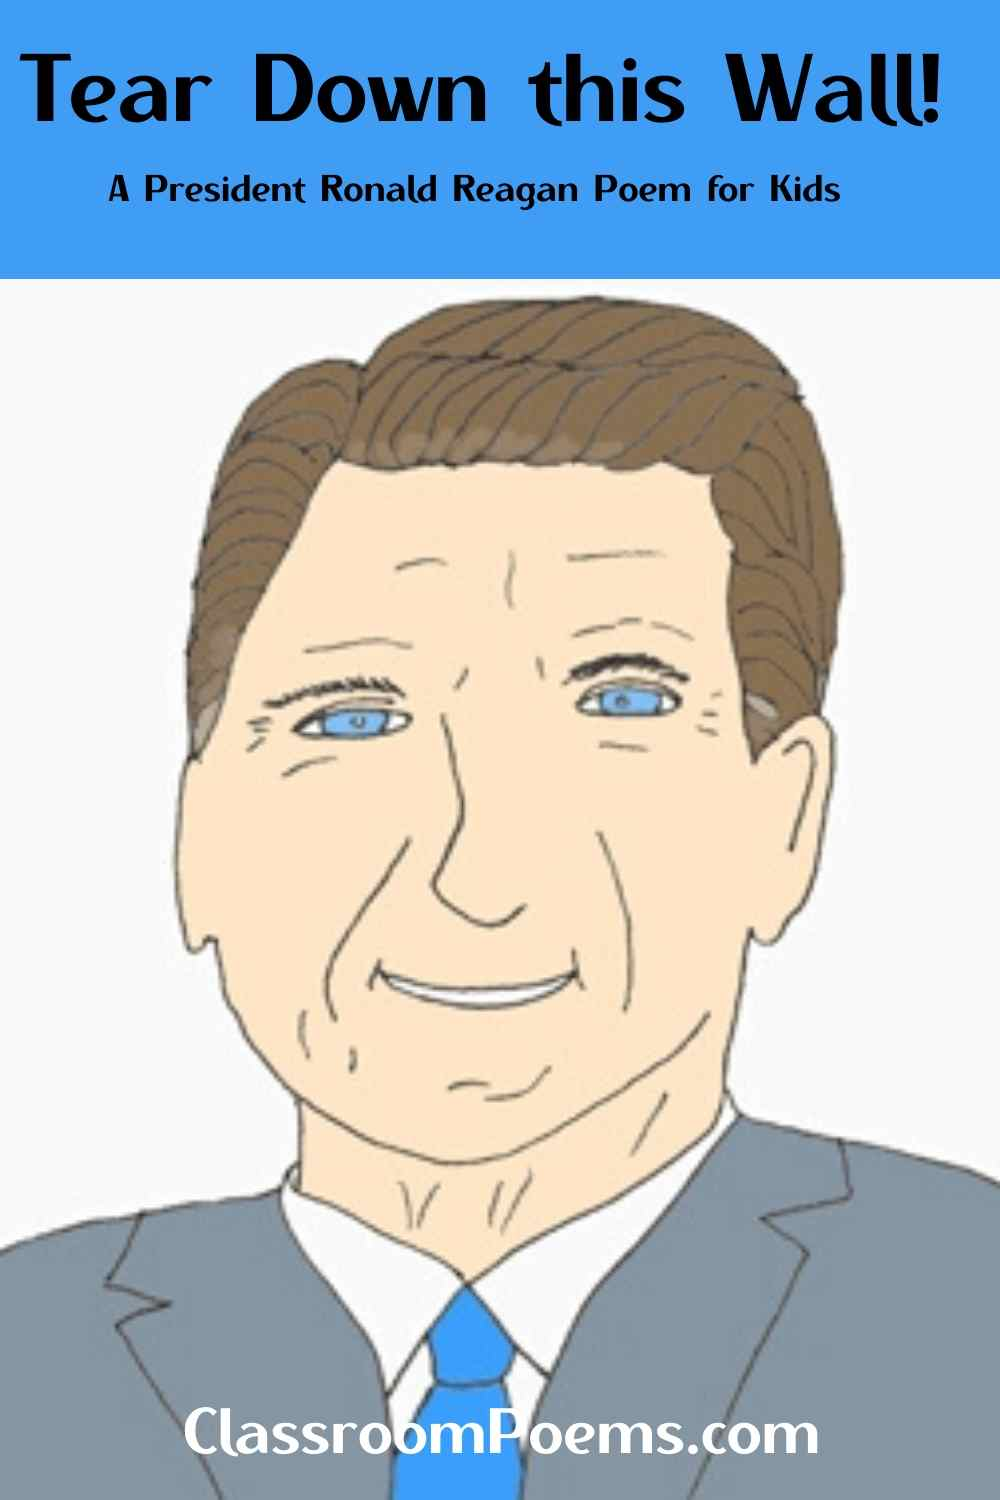 Ronald Reagan drawing and poem. Ronald Reagan cartoon drawing.